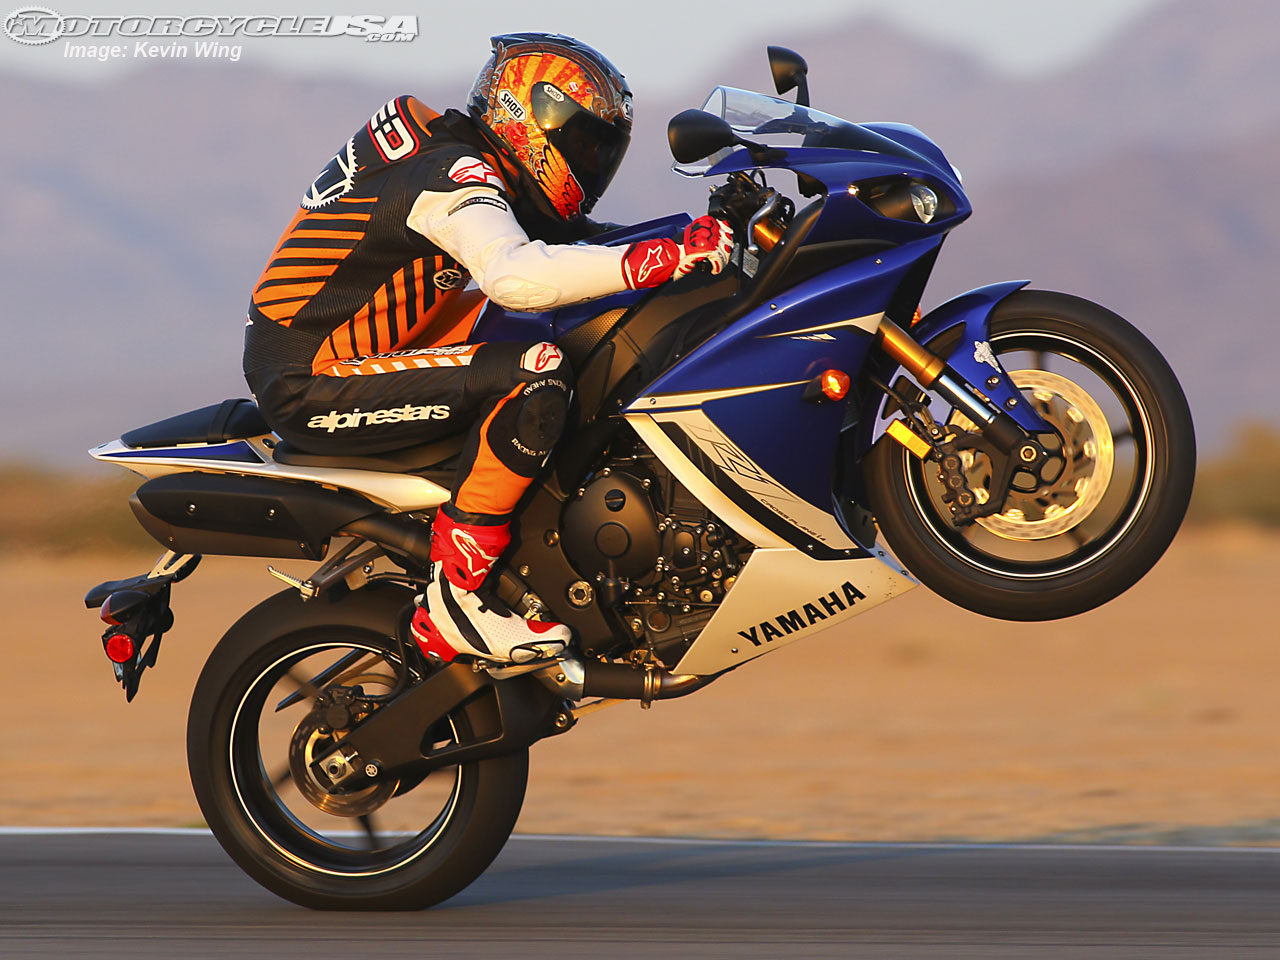 YAMAHA FAST BIKES IMAGES AND WALLPAPERS